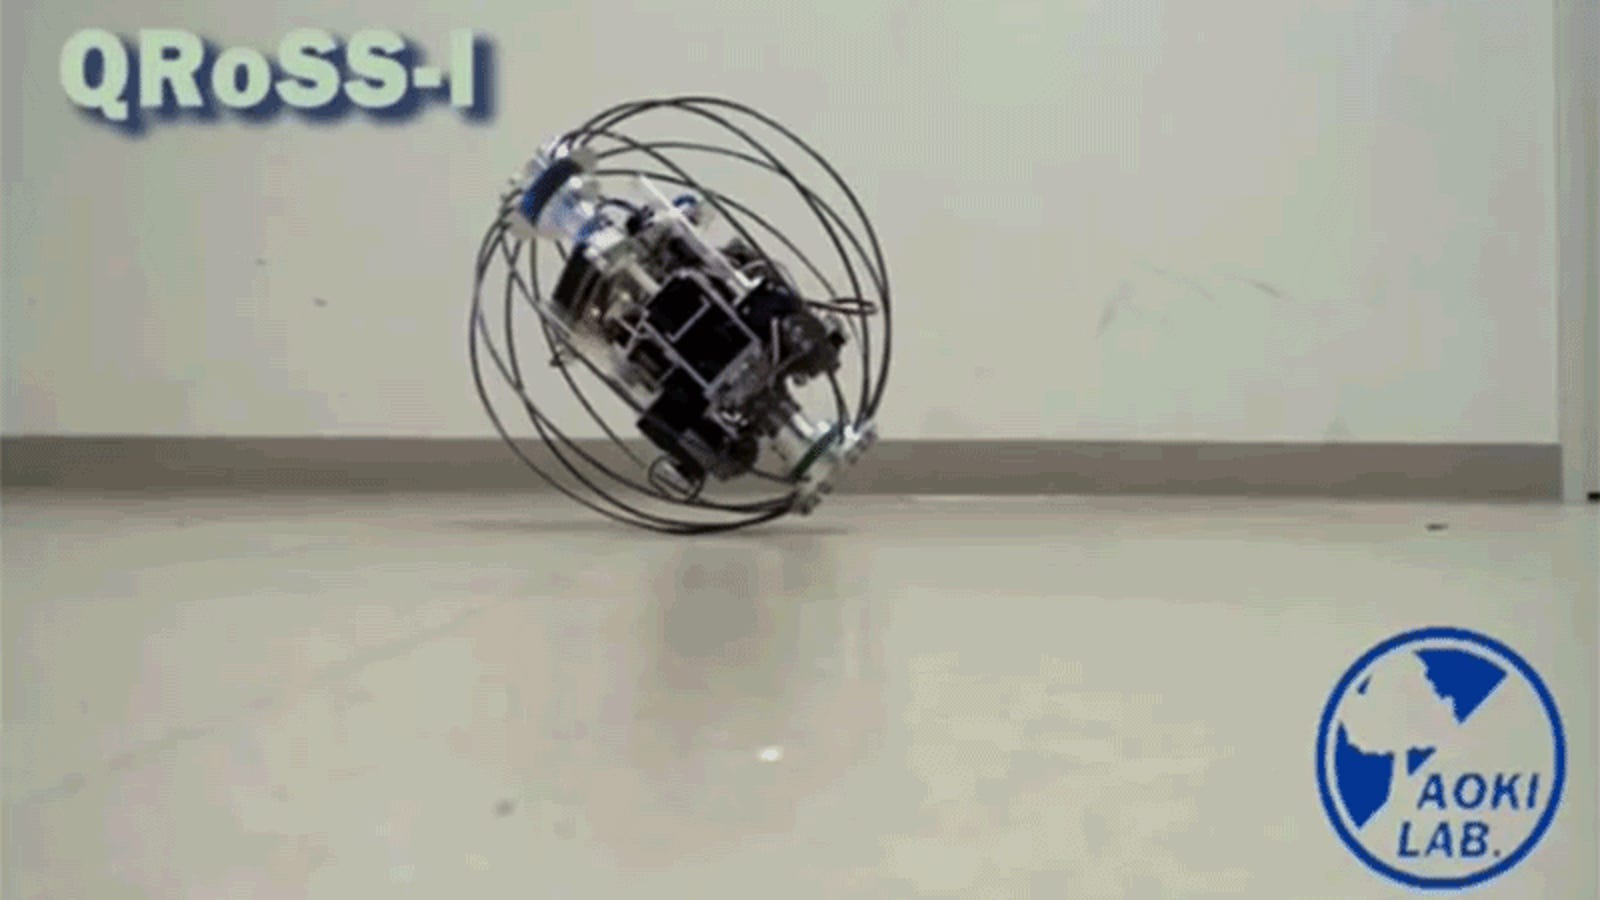 This Spherical Robot Can Unfurl Its Four Legs After Being Tossed